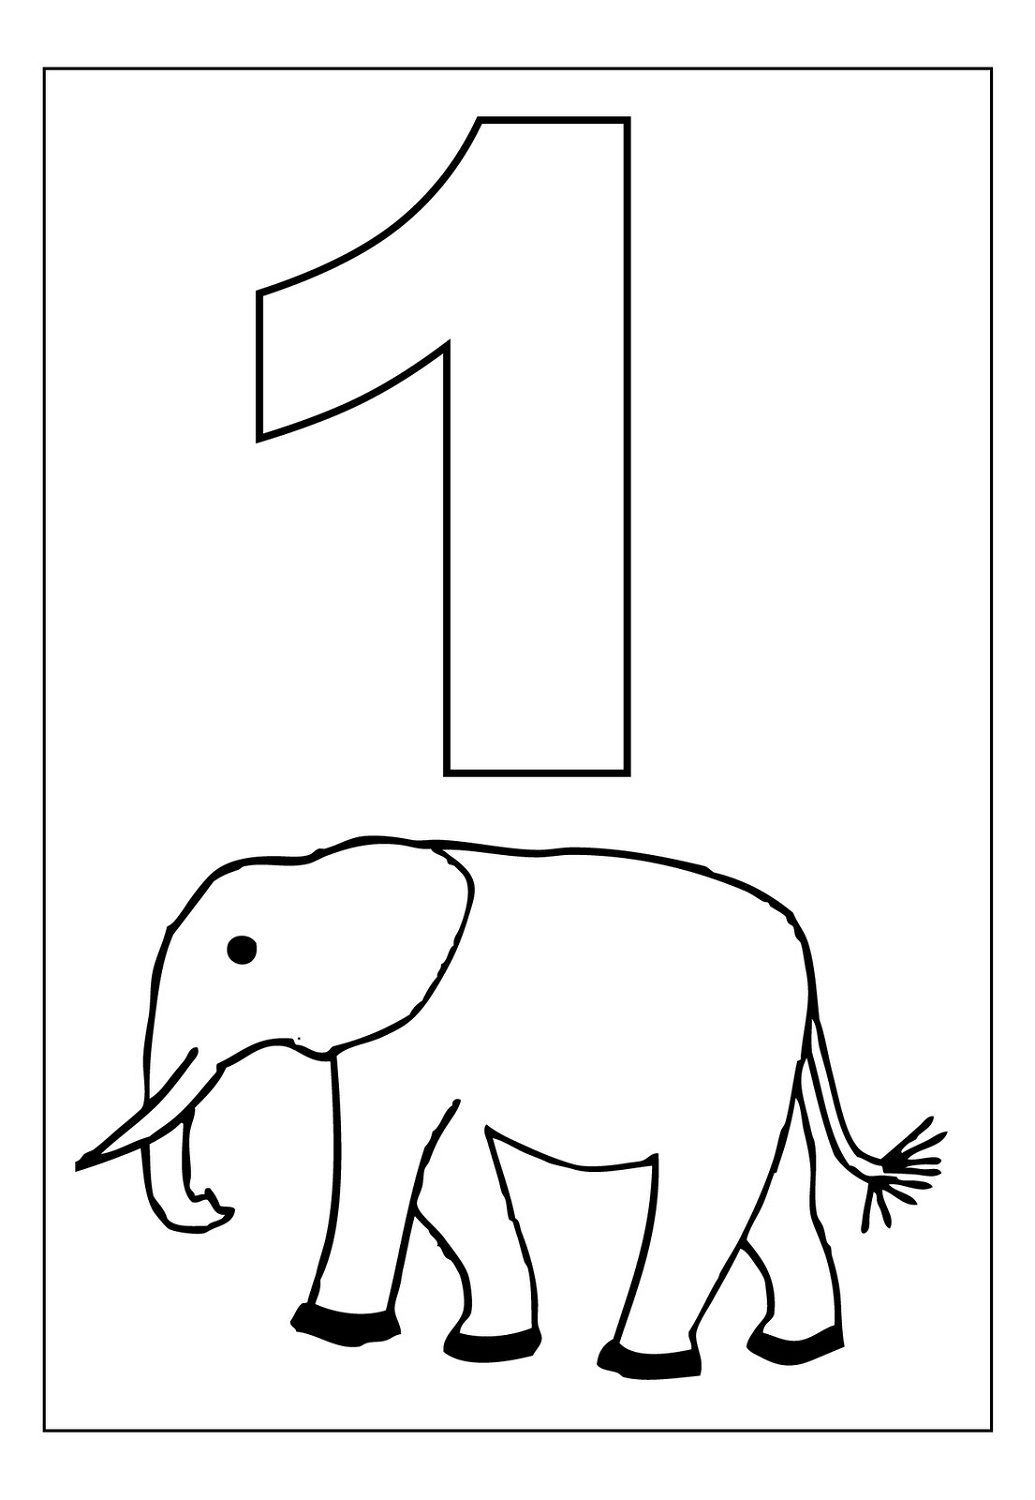 Printable Animal Number Coloring Pages Numbers 1 10 Preschool